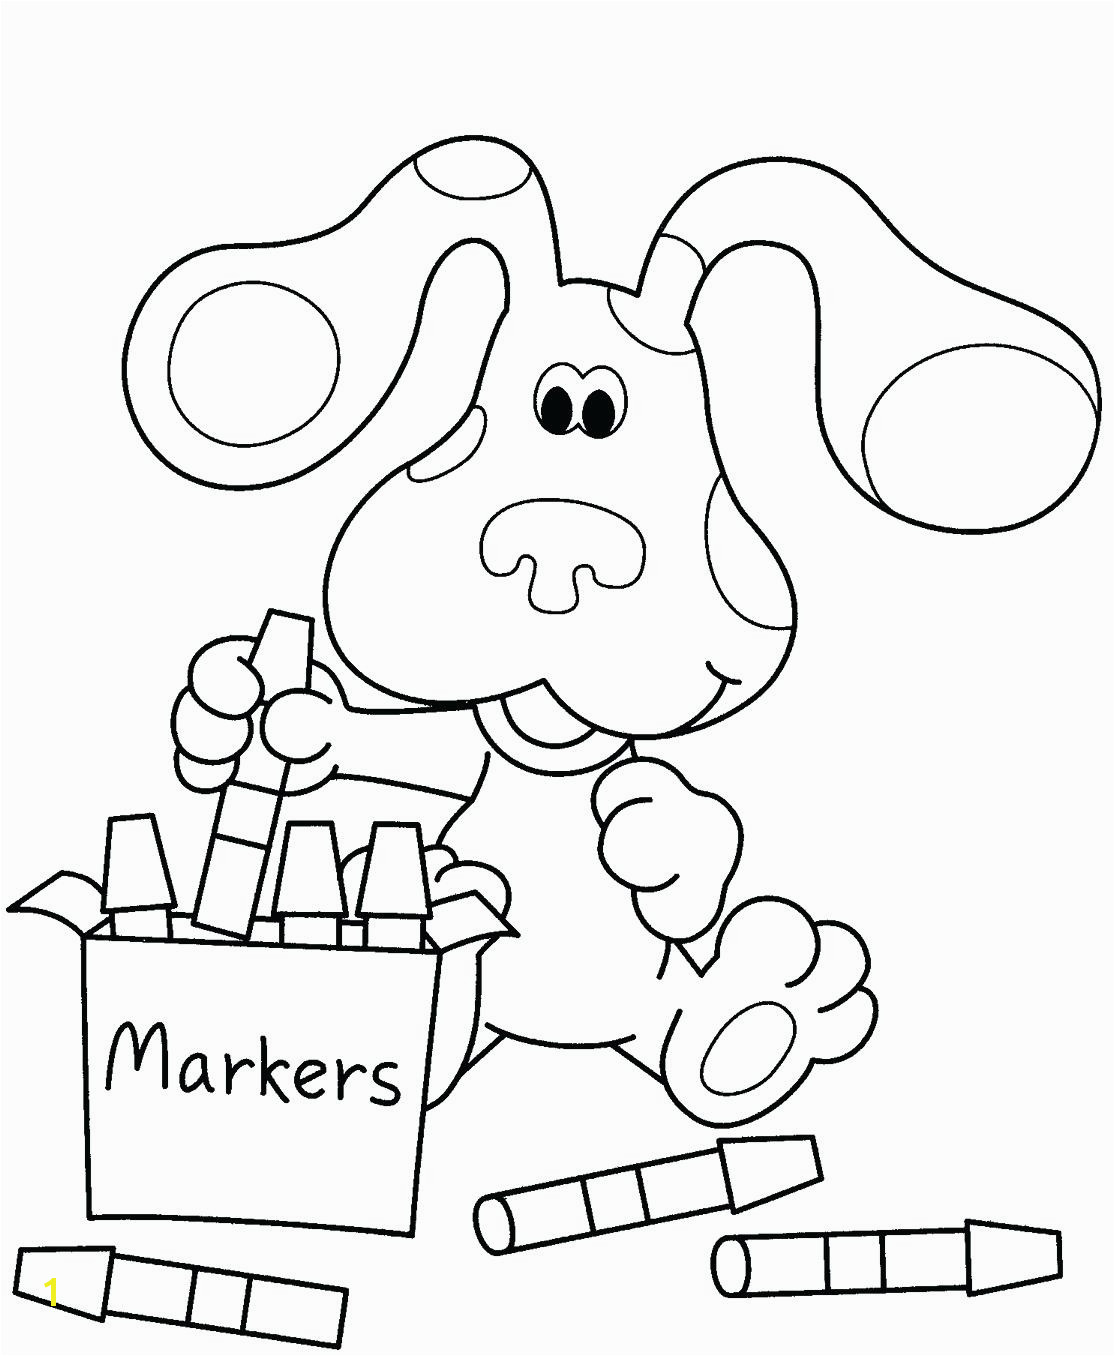 Awesome disney jr coloring pages Free 11 q Coloring Disney Junior Octonauts Pages Jr